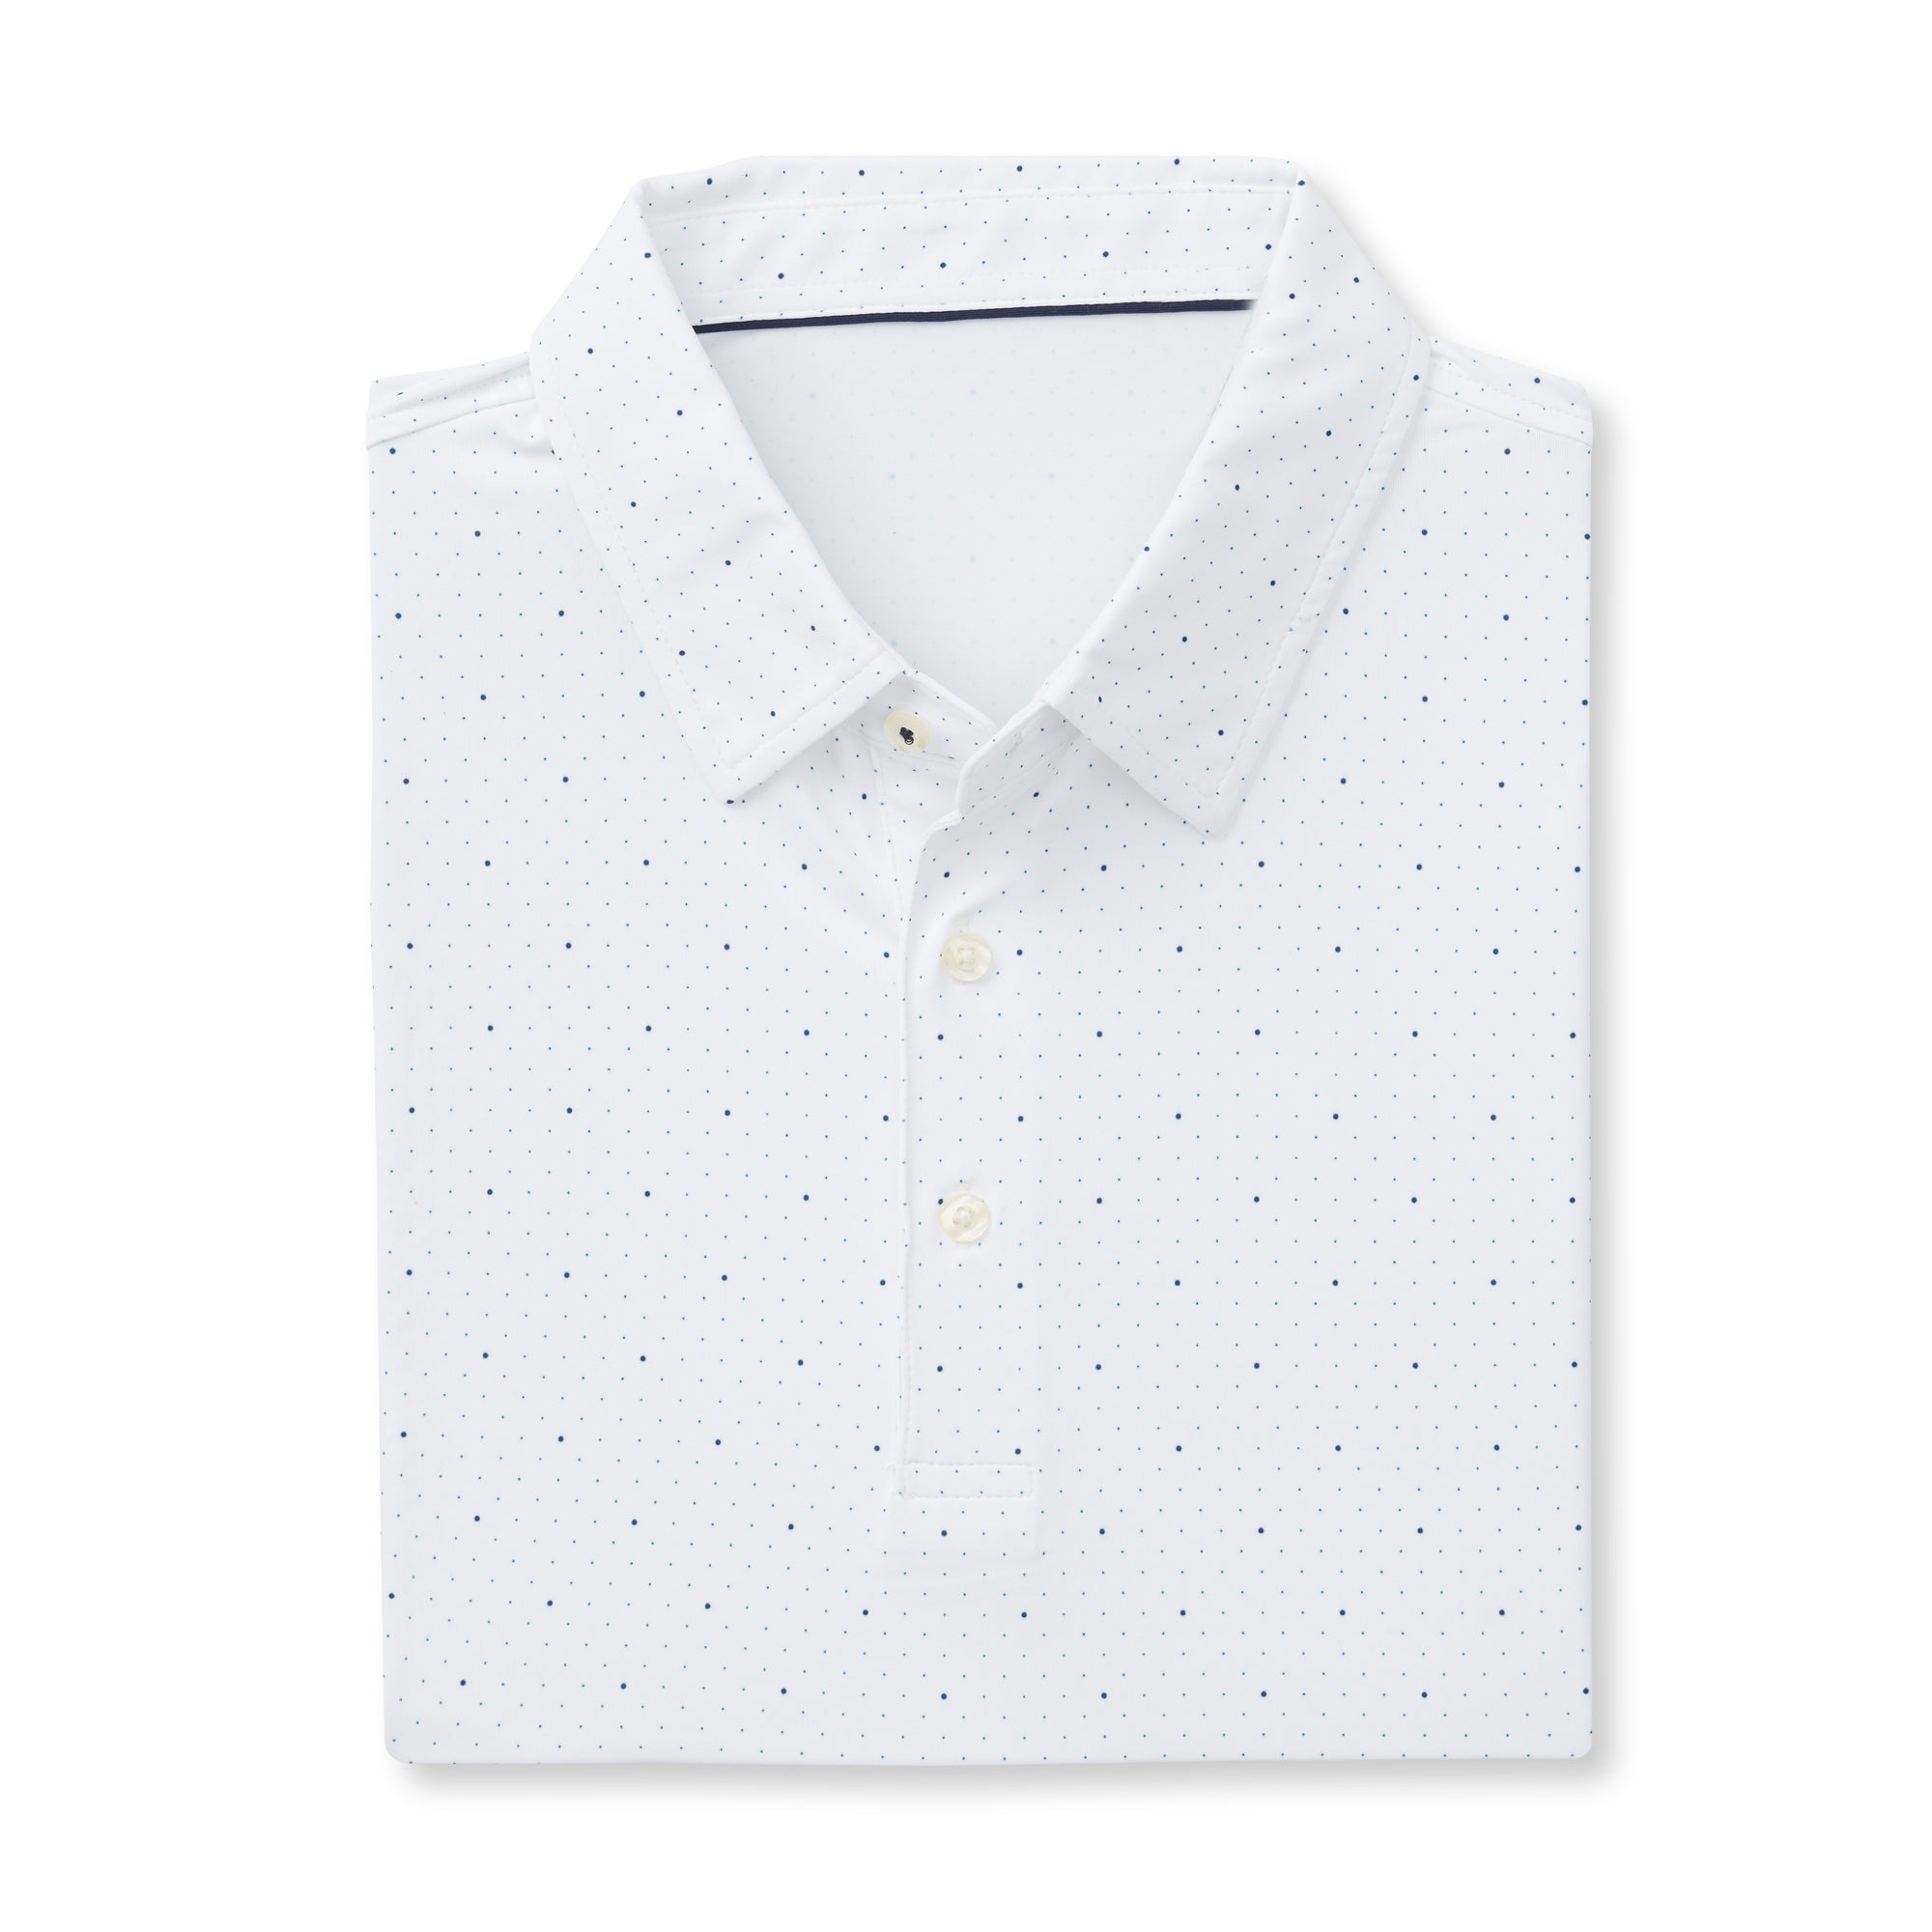 THE SYWALKER POLO - White/Navy IS76803